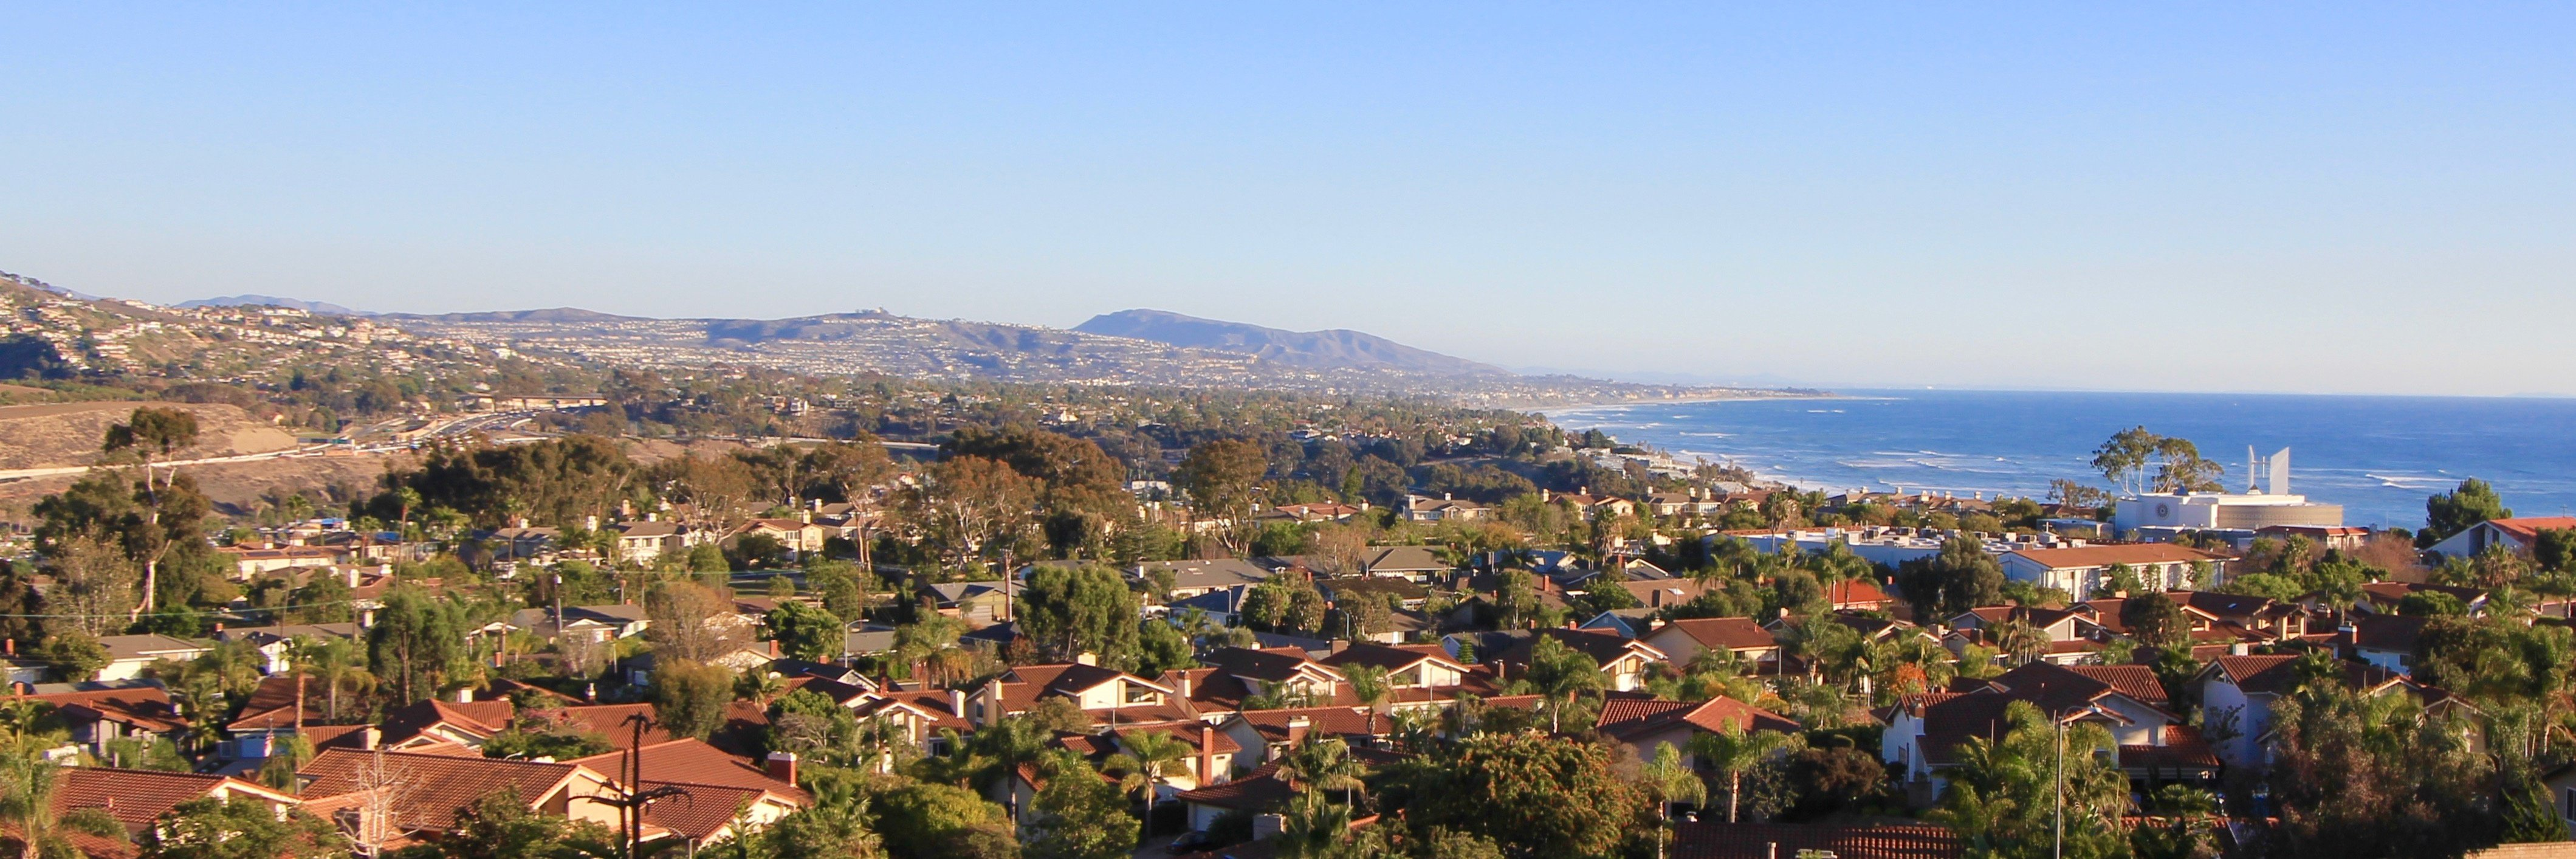 See all the way to the harbor from Diamond Ridge Estates